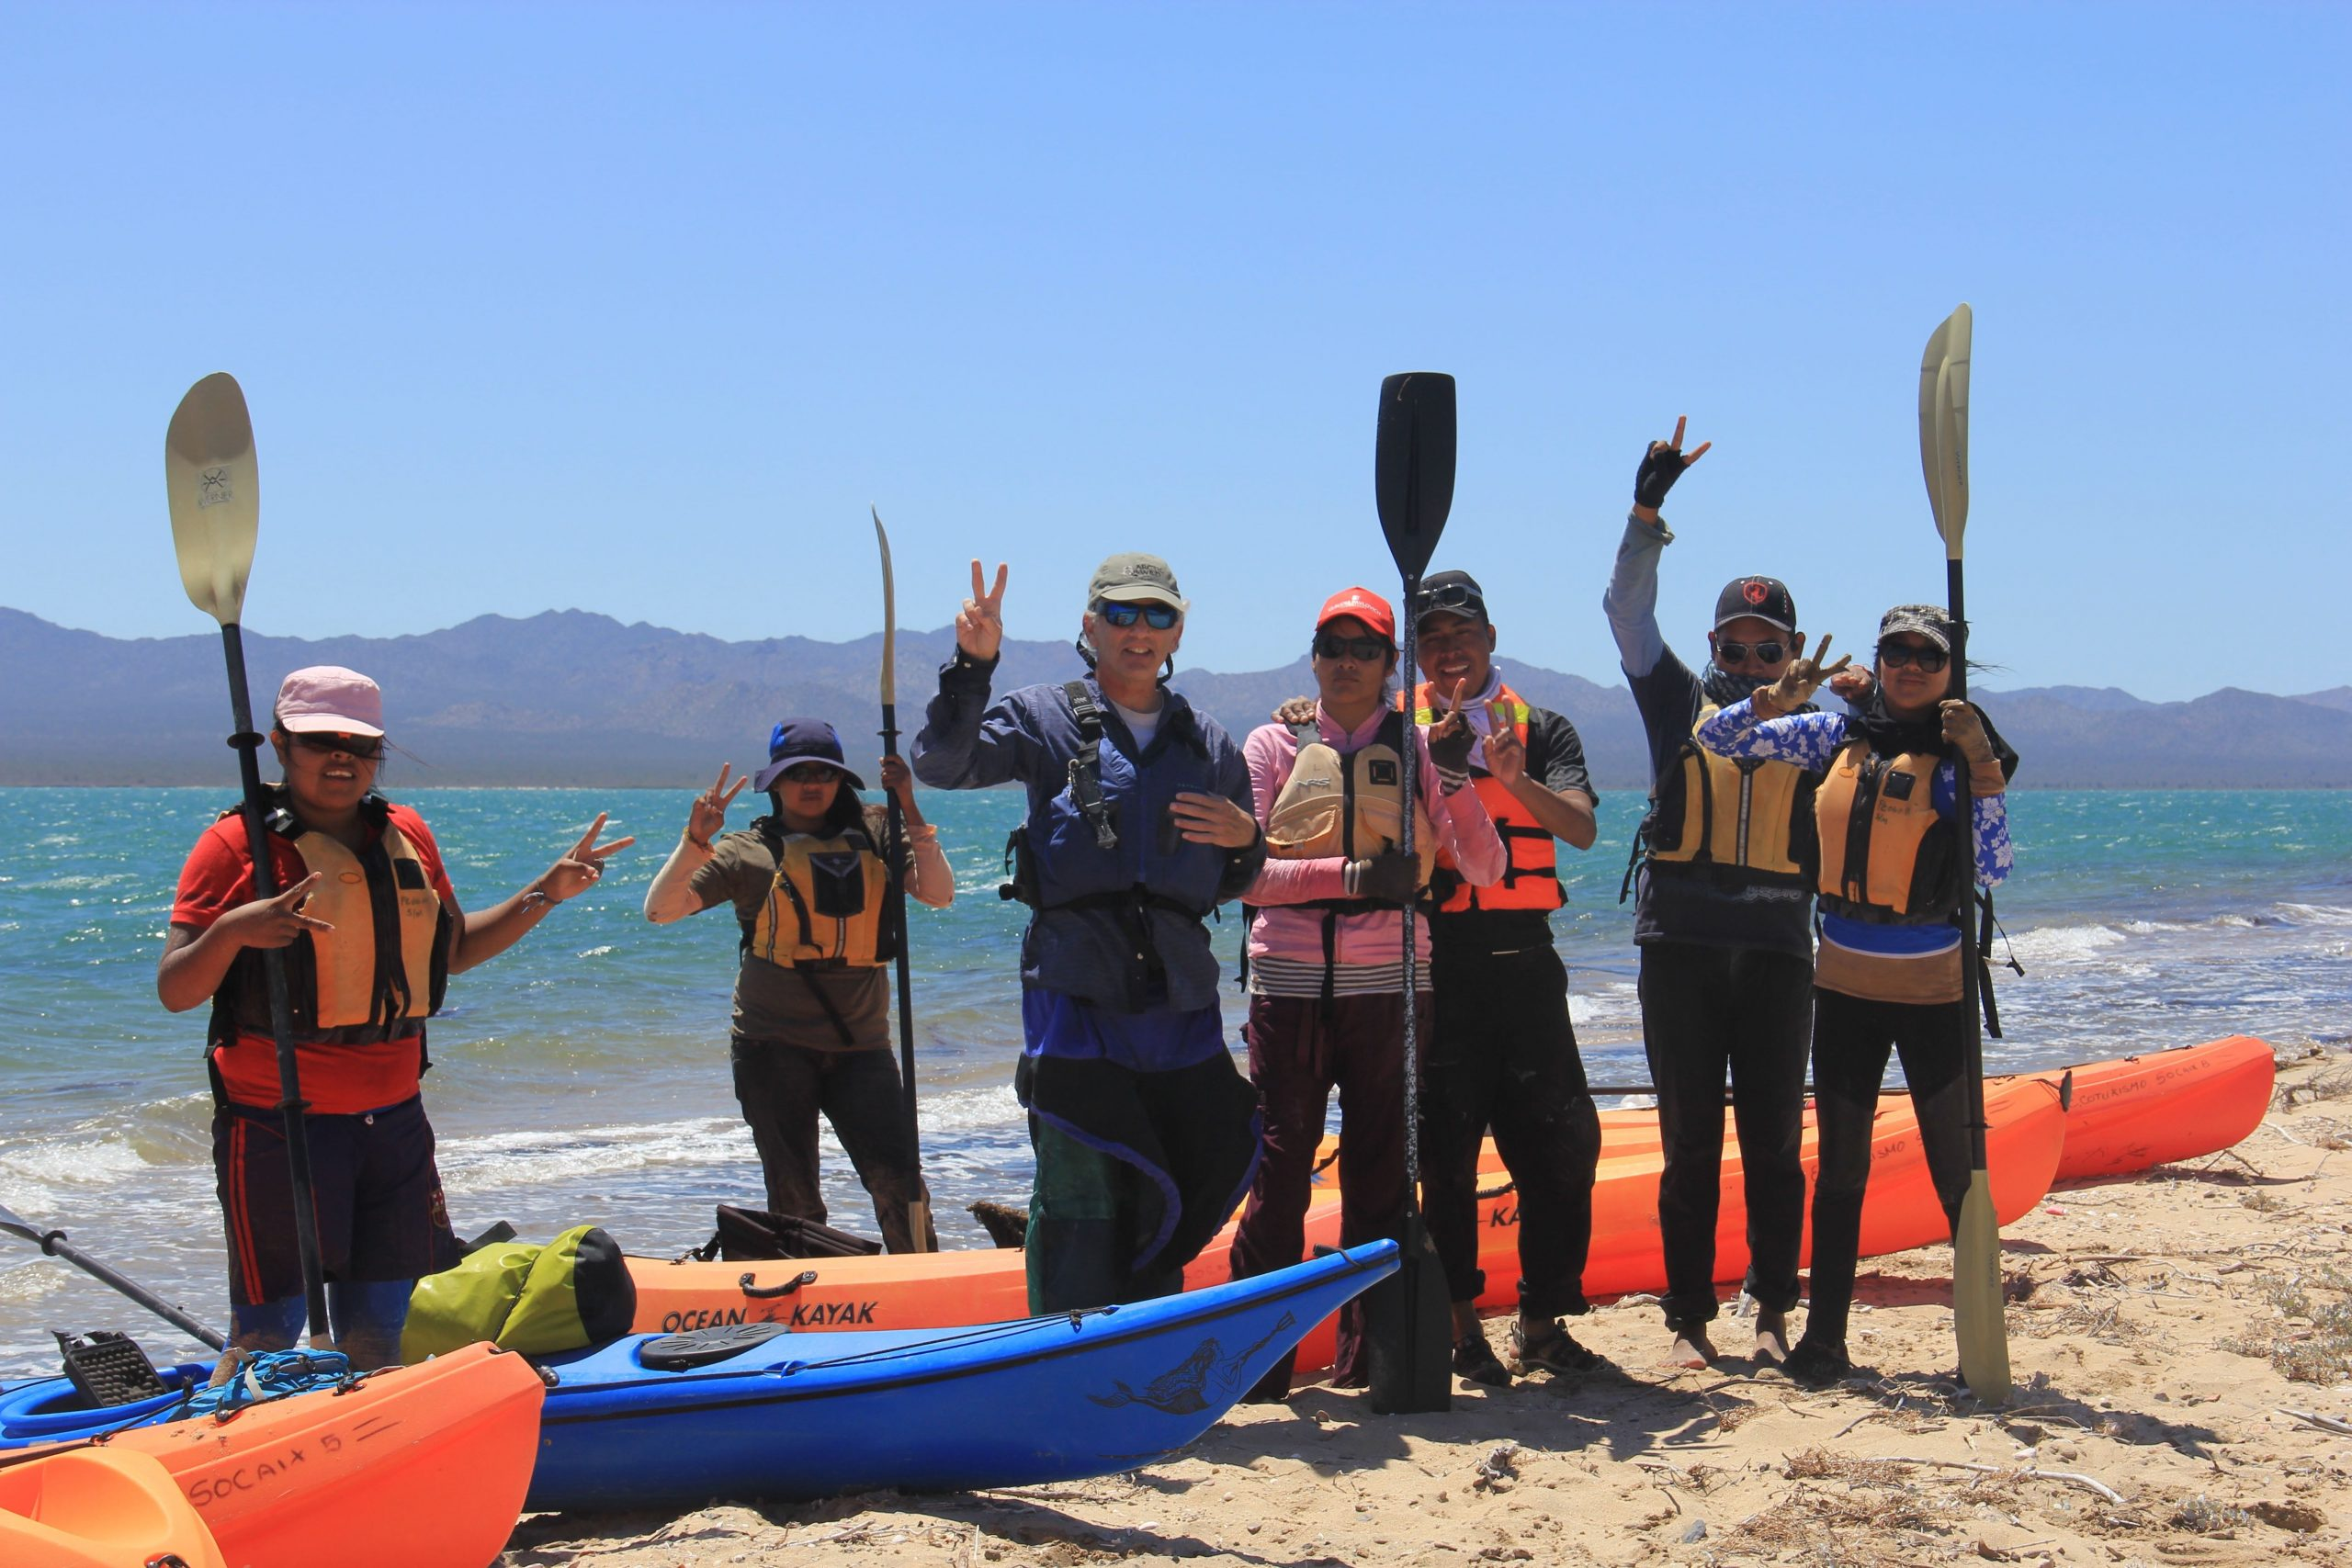 Kayaking course with the National Outdoor Leadership School. Credit: Borderlands Restoration Network